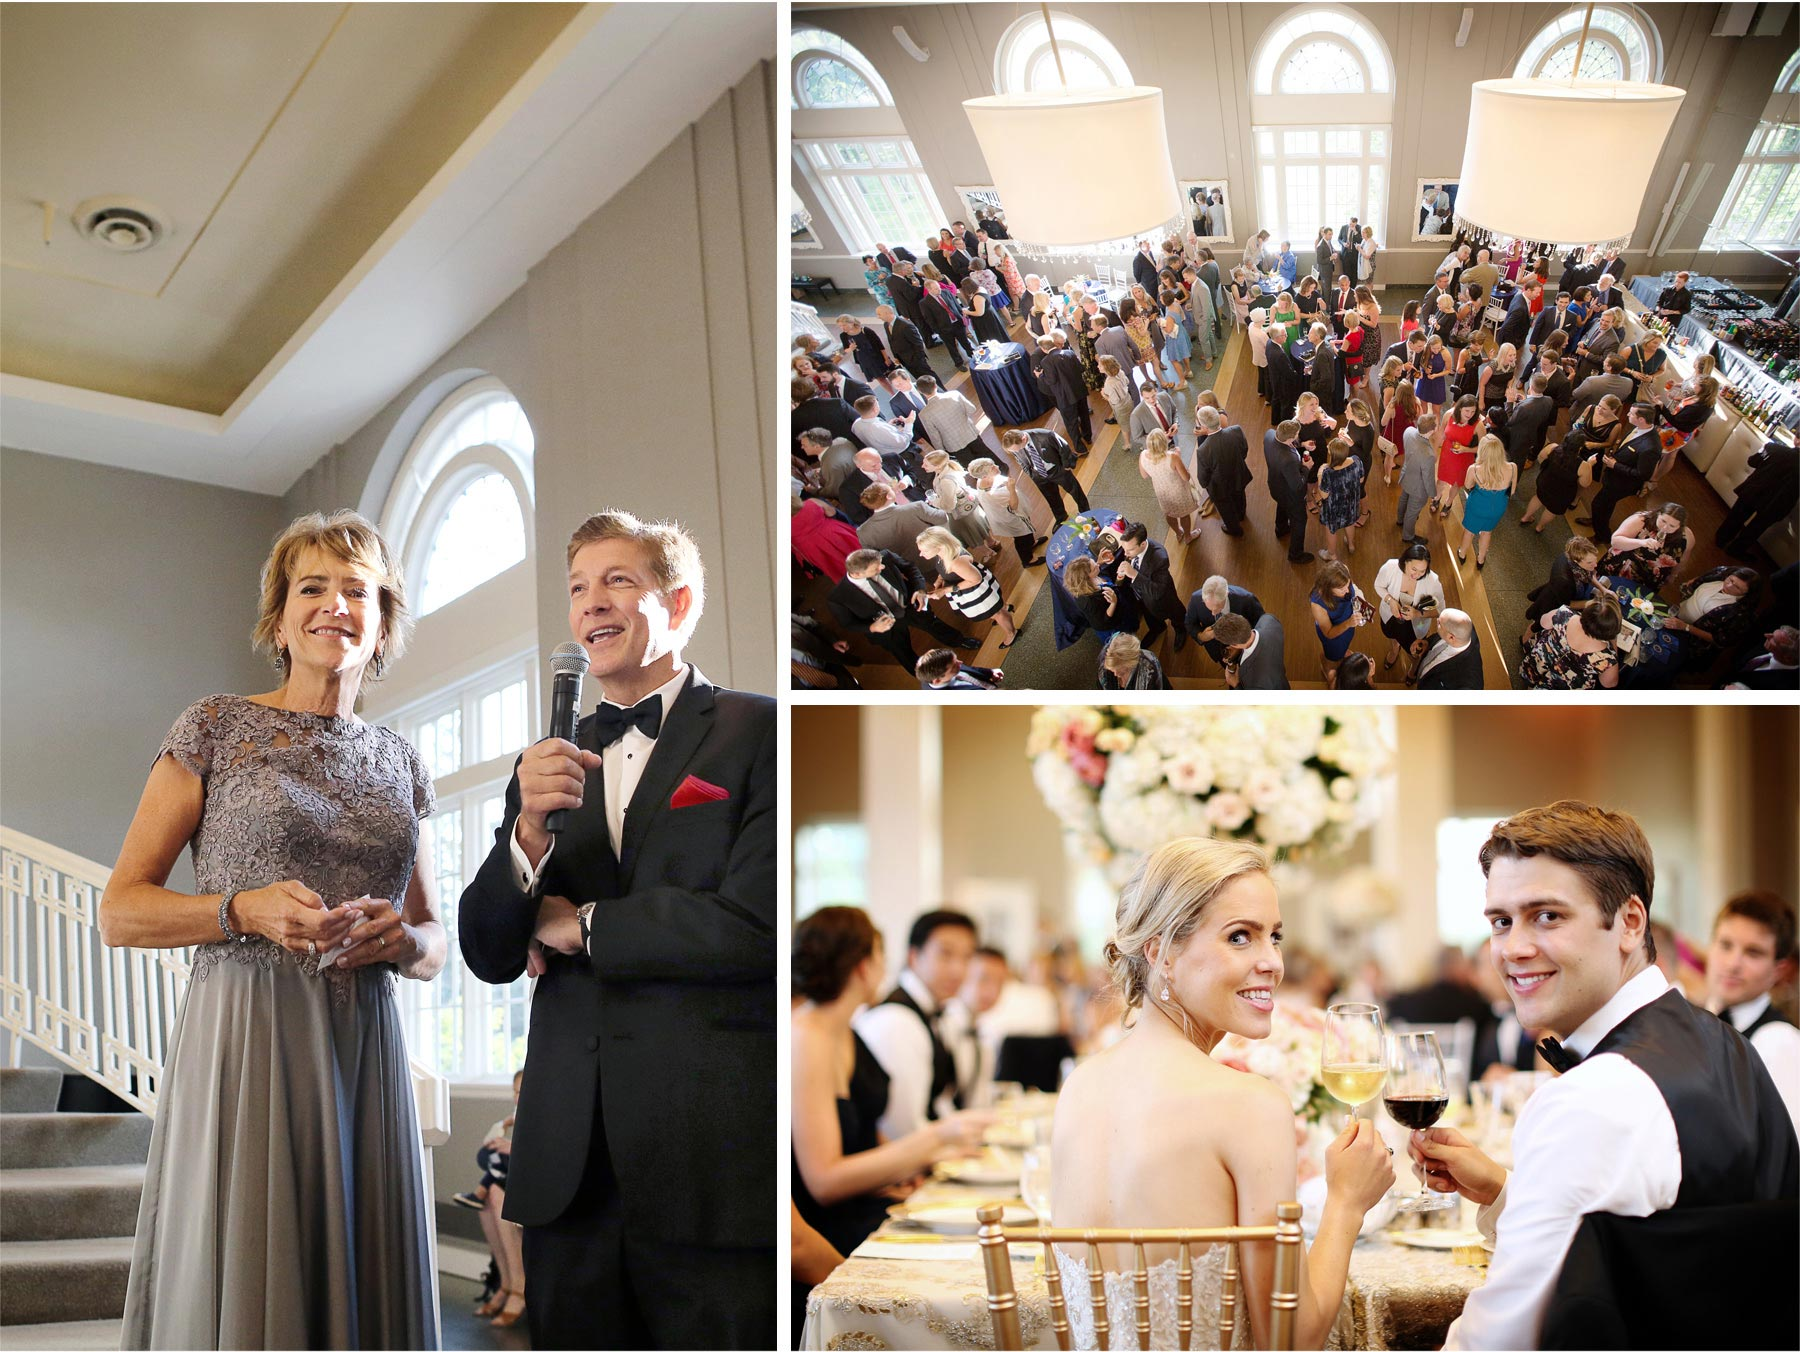 22-Minneapolis-Minnesota-Wedding-Photographer-by-Andrew-Vick-Photography-Summer--Calhoun-Beach-Club-Reception-Bride-Groom-Speeches-Guests-Mother-Father-Parents-Wine-Michelle-and-Kevin.jpg